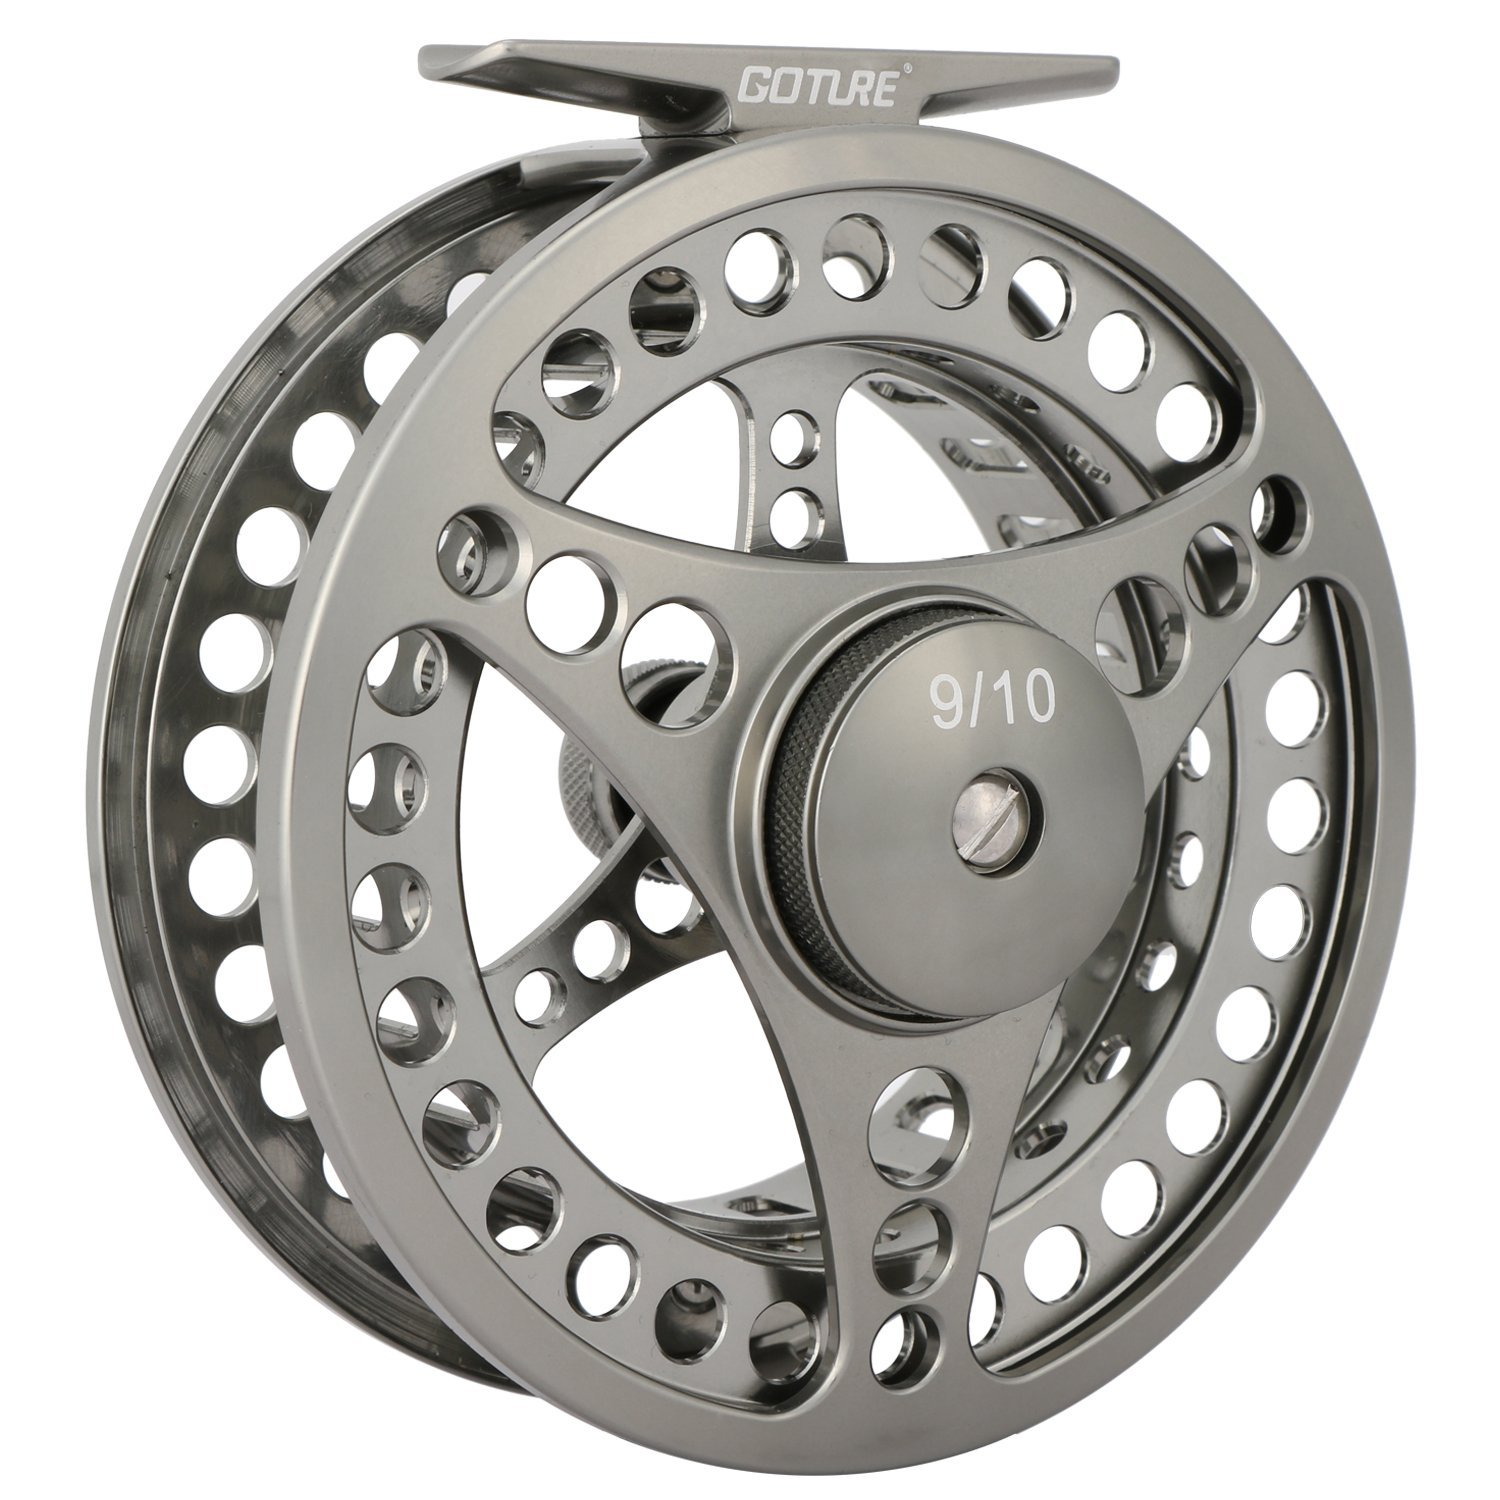 Goture Fly Fishing Reel